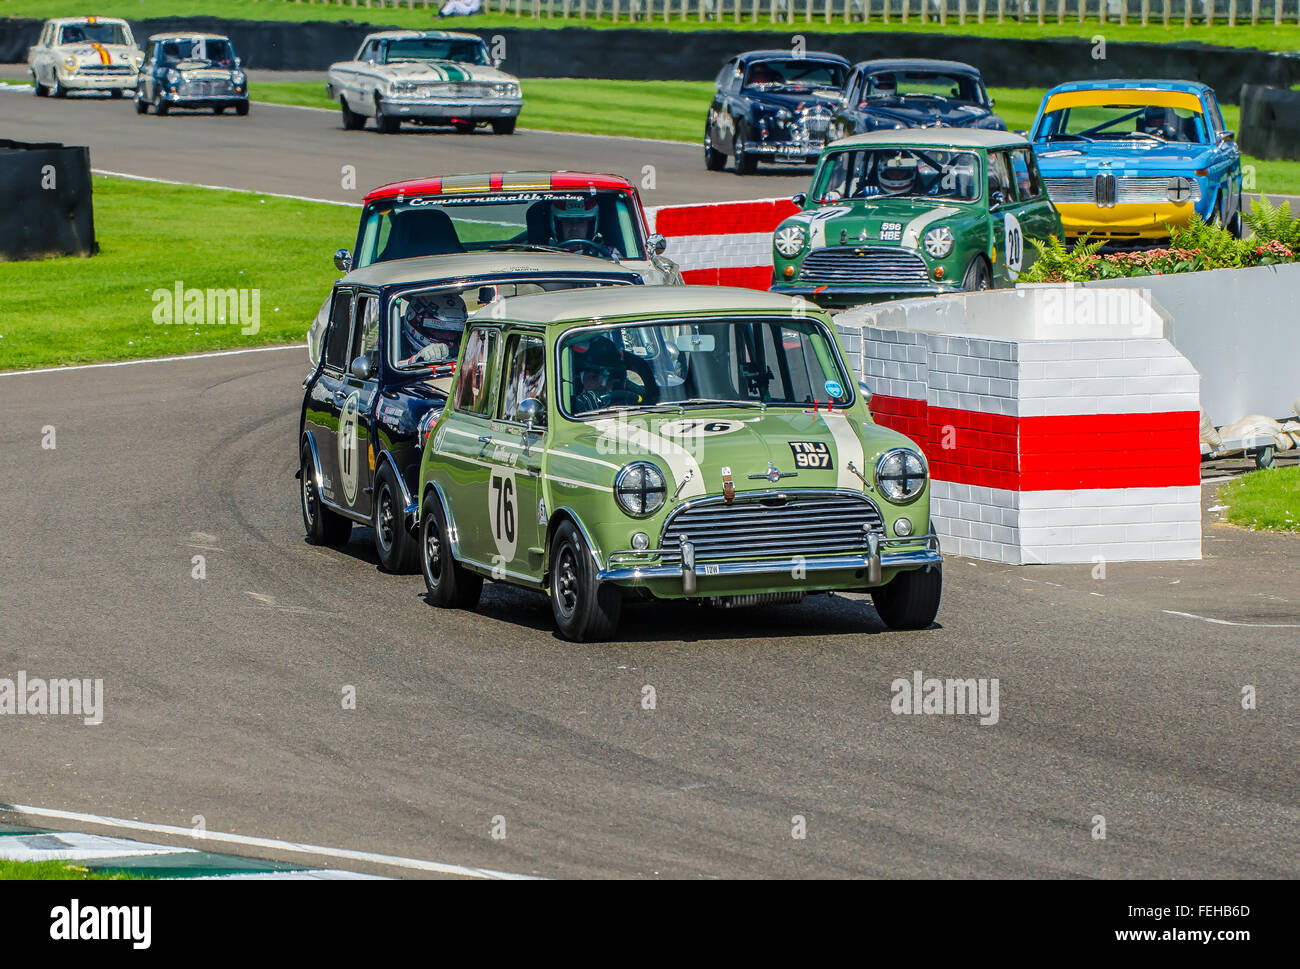 1963-austin-mini-cooper-s-is-owned-by-nick-swift-and-was-raced-by-FEHB6D.jpg